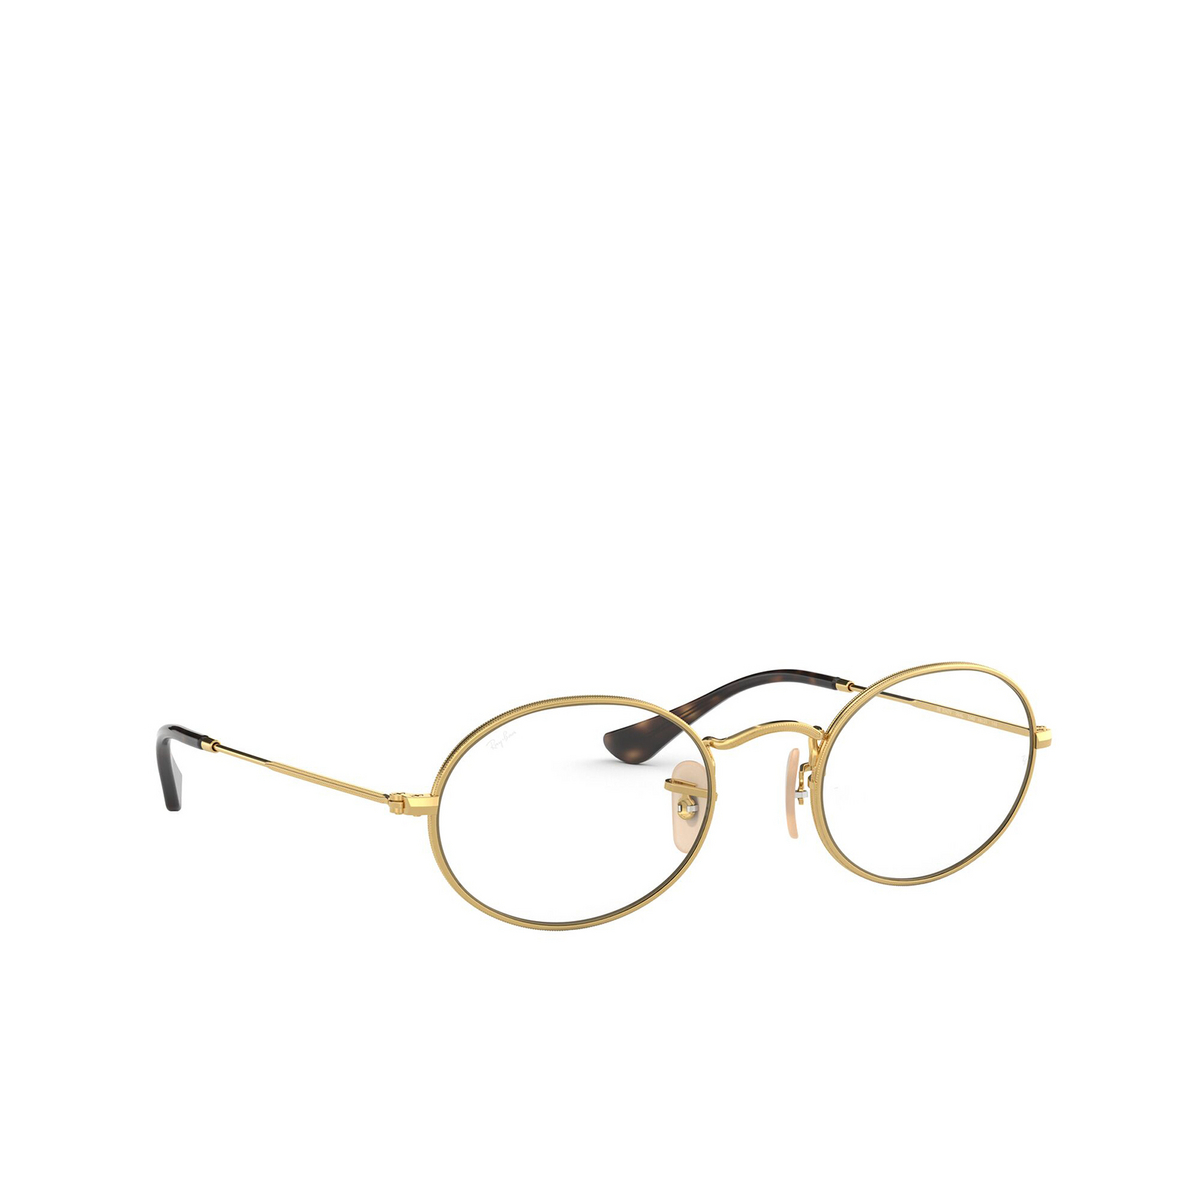 Ray-Ban® Oval Eyeglasses: Oval RX3547V color Arista 2500 - three-quarters view.